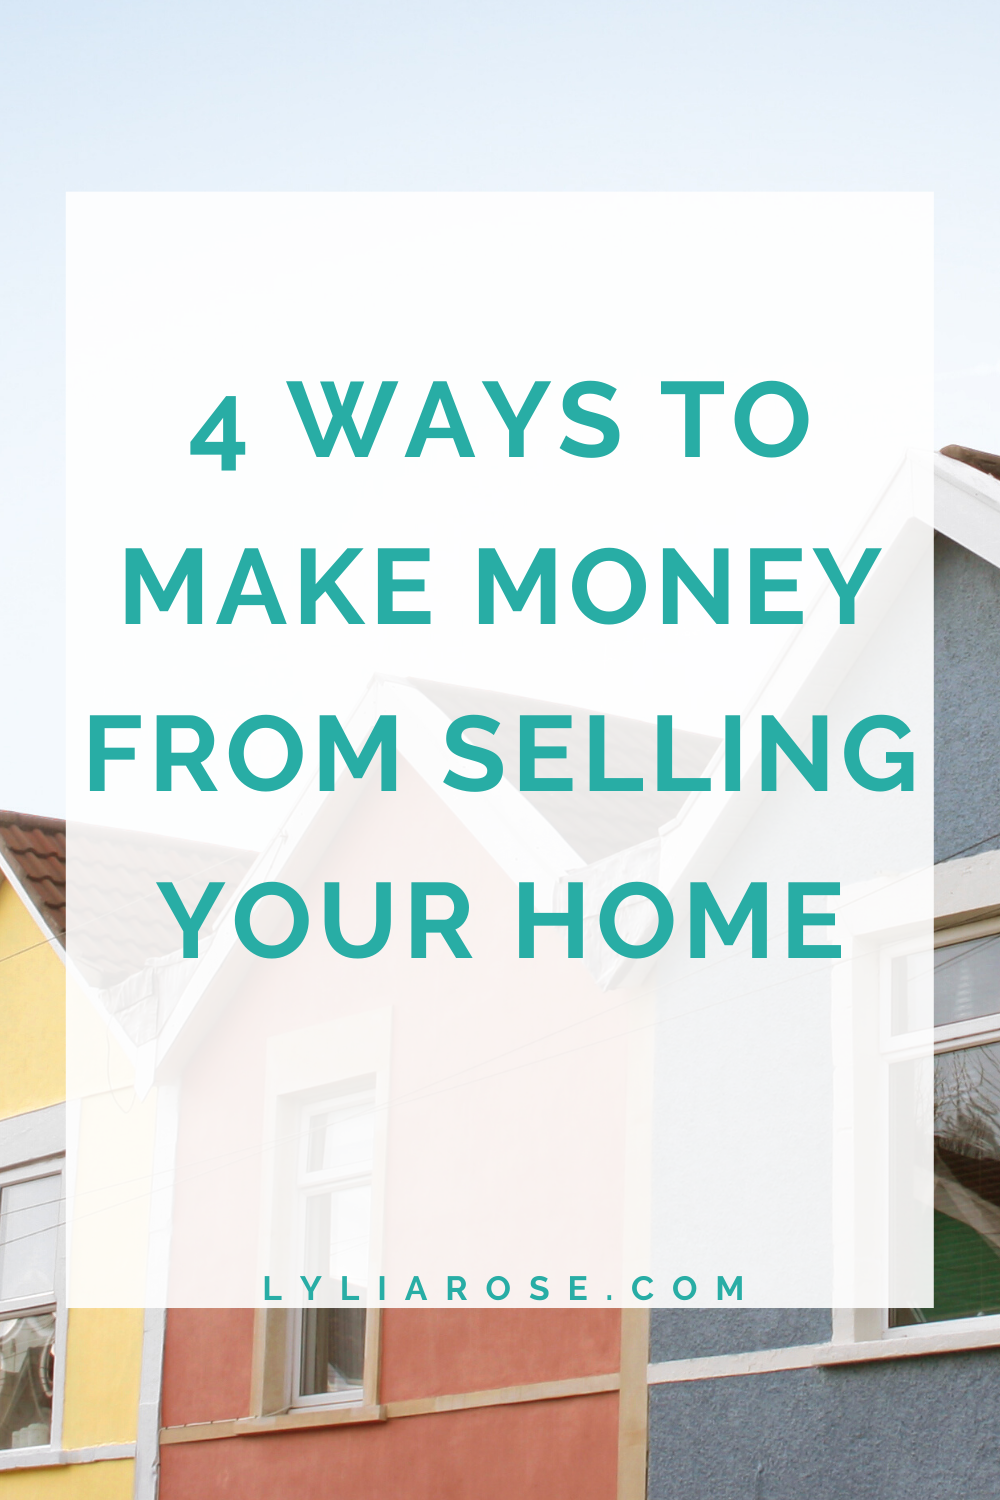 4 ways to make money from selling your home